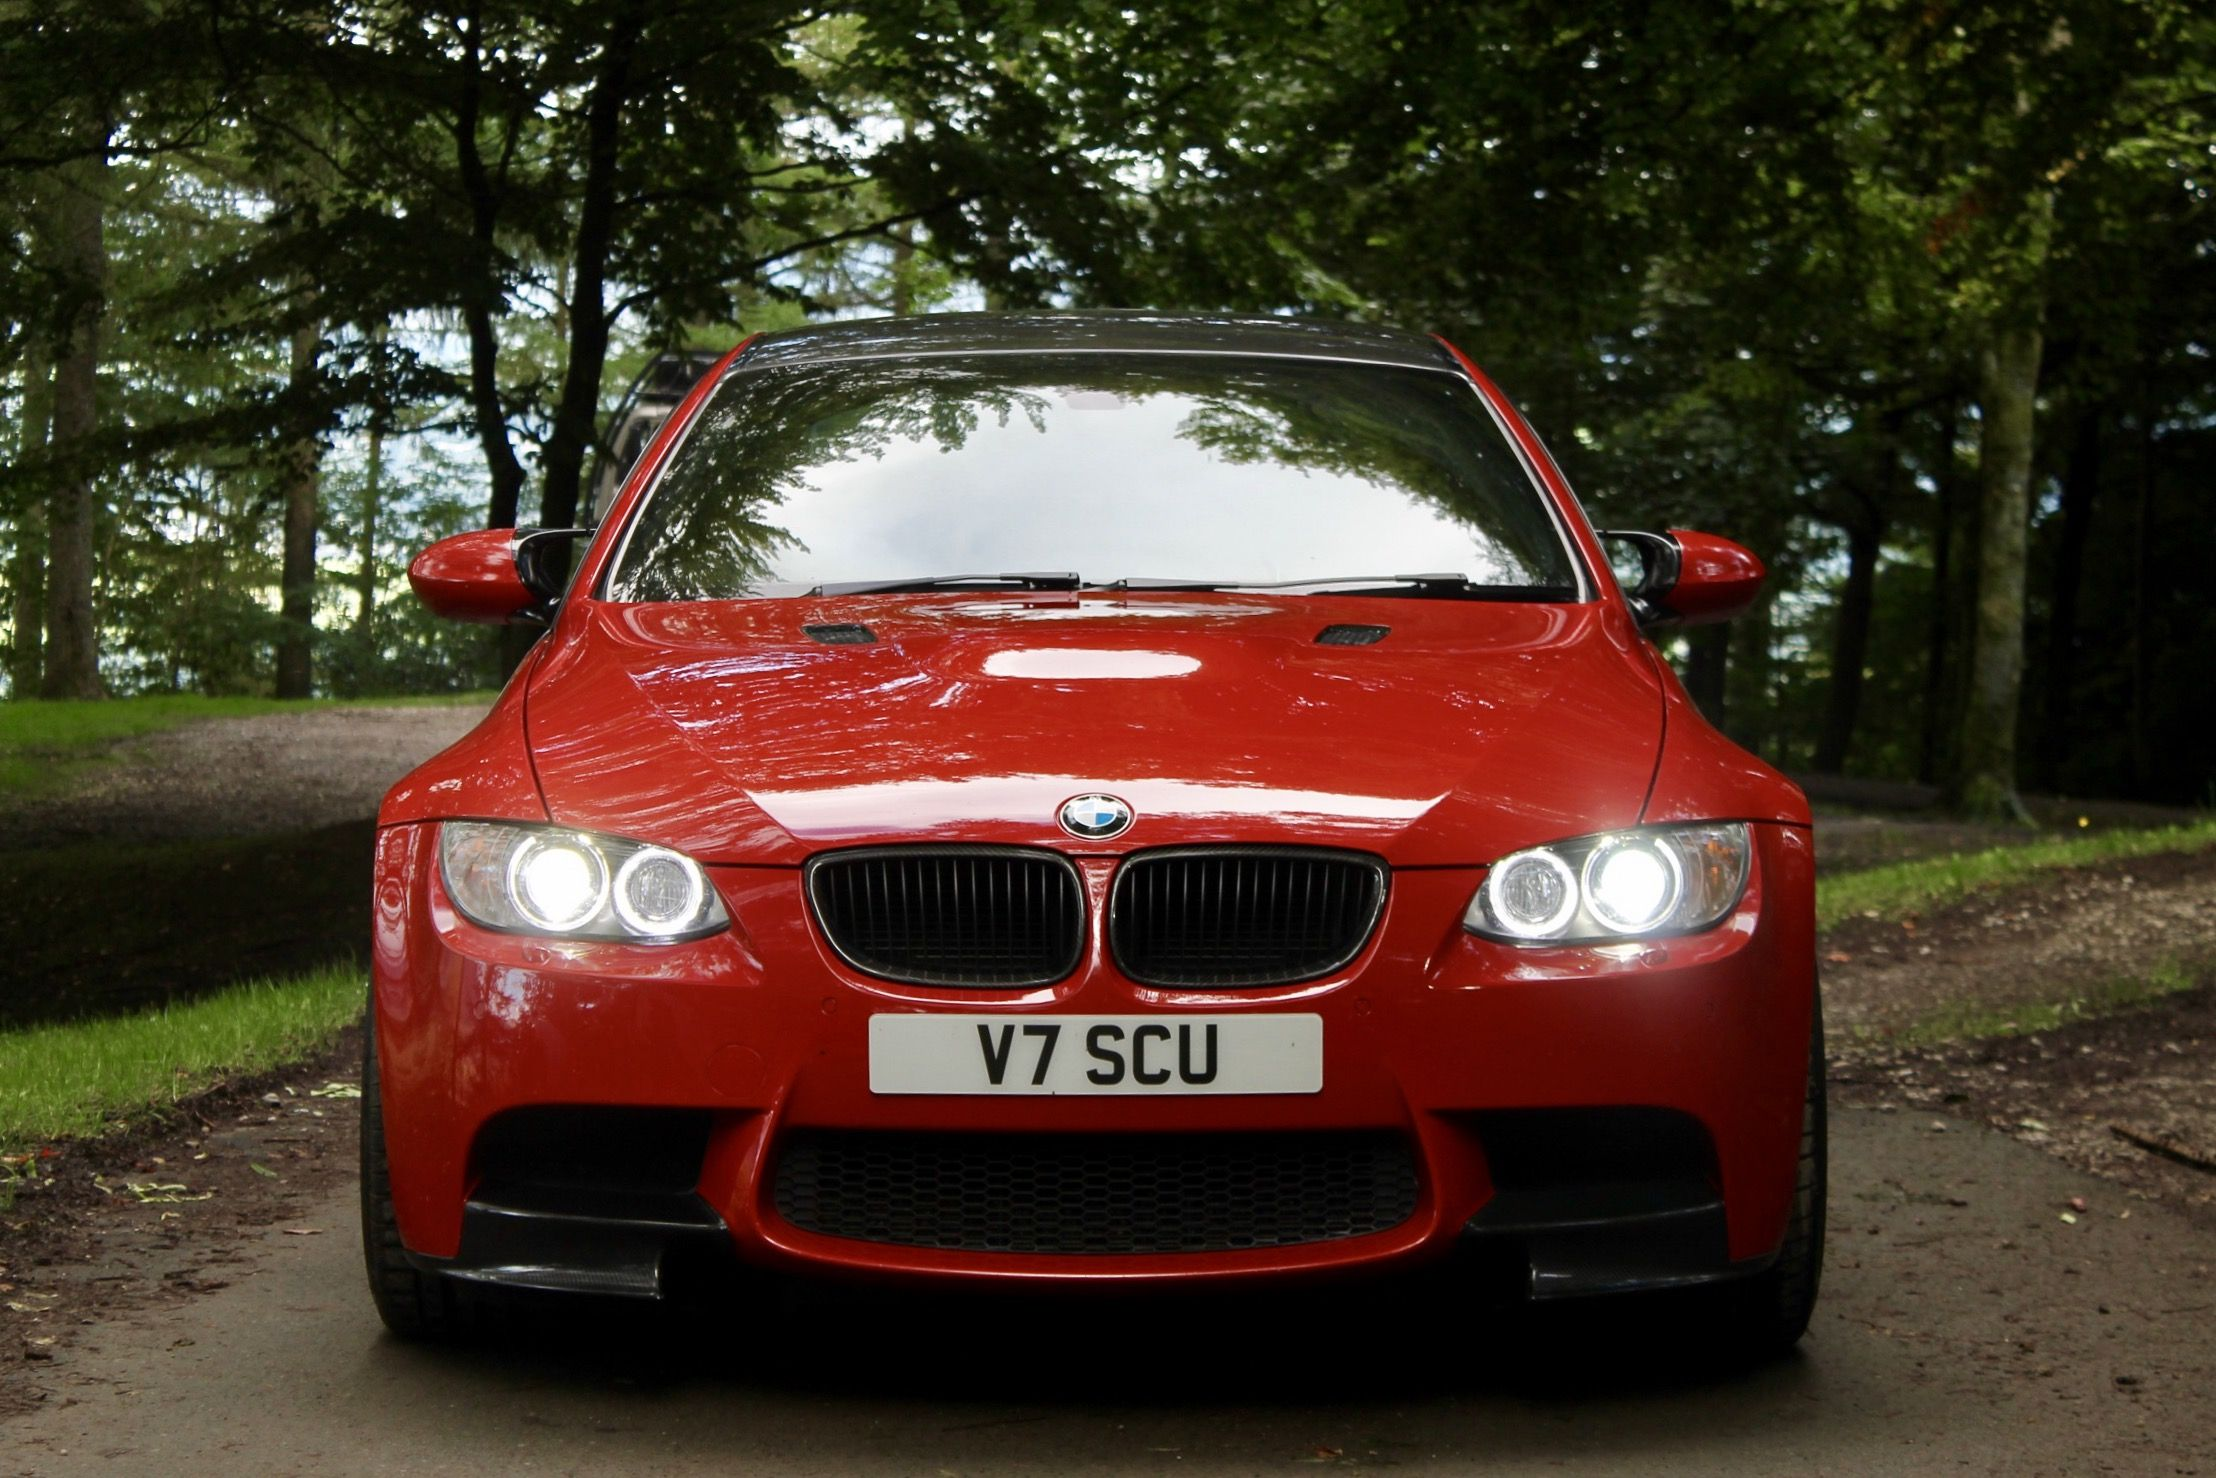 medium resolution of 2012 bmw e92 m3 individual japan red 1 of 37 competition pack edc